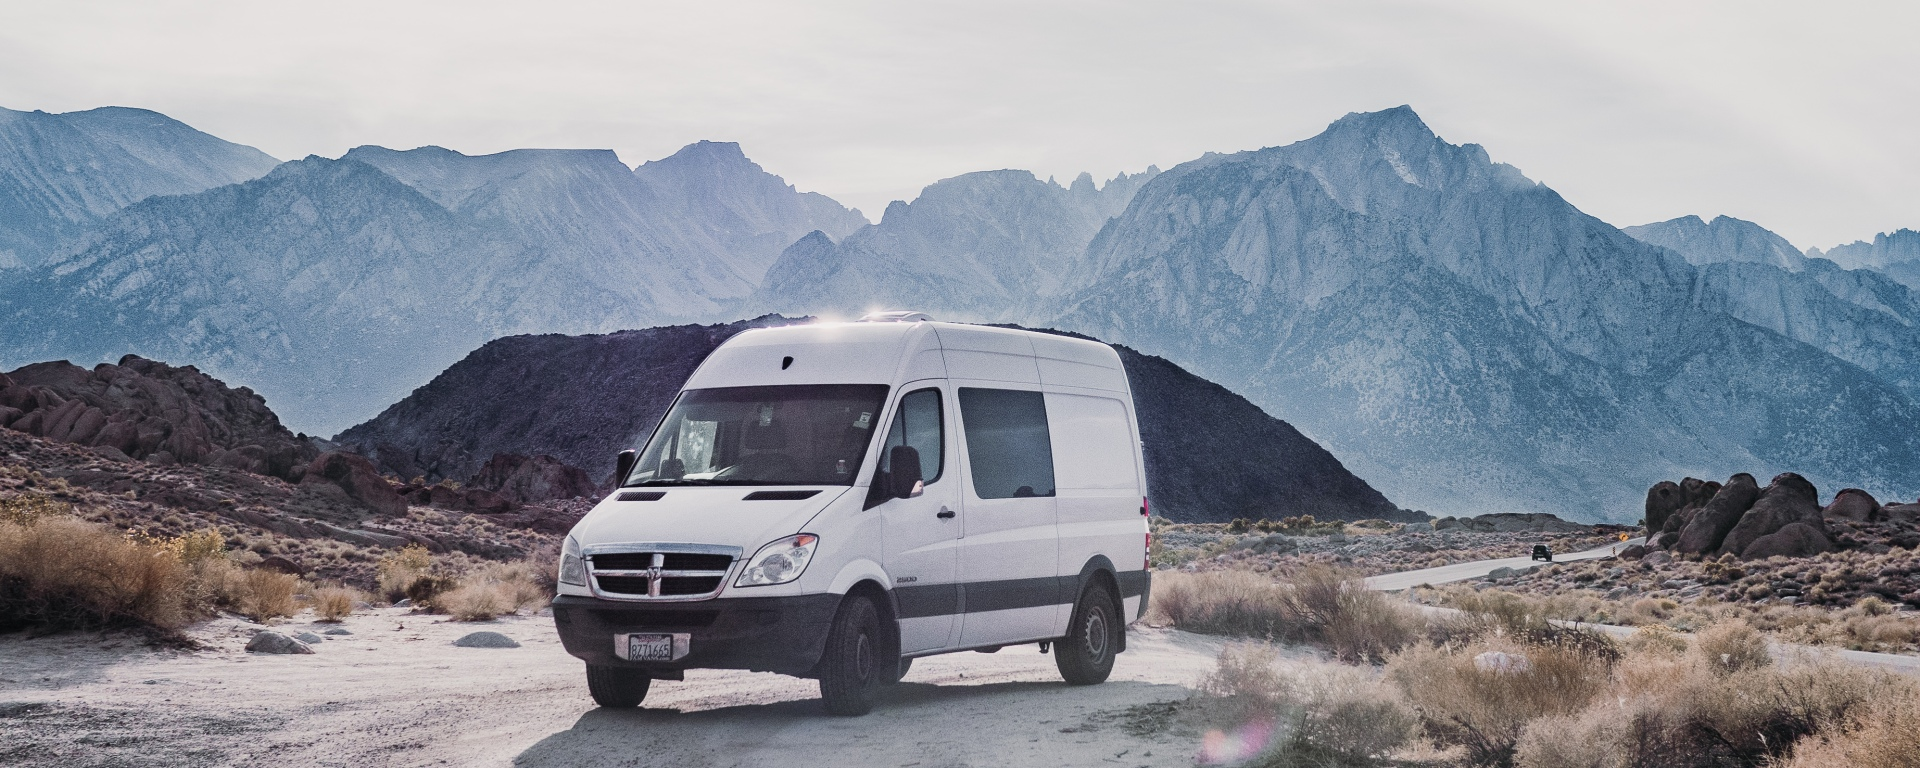 Why Did We Choose a Sprinter for Our Van Conversion? – Bite Size Travels